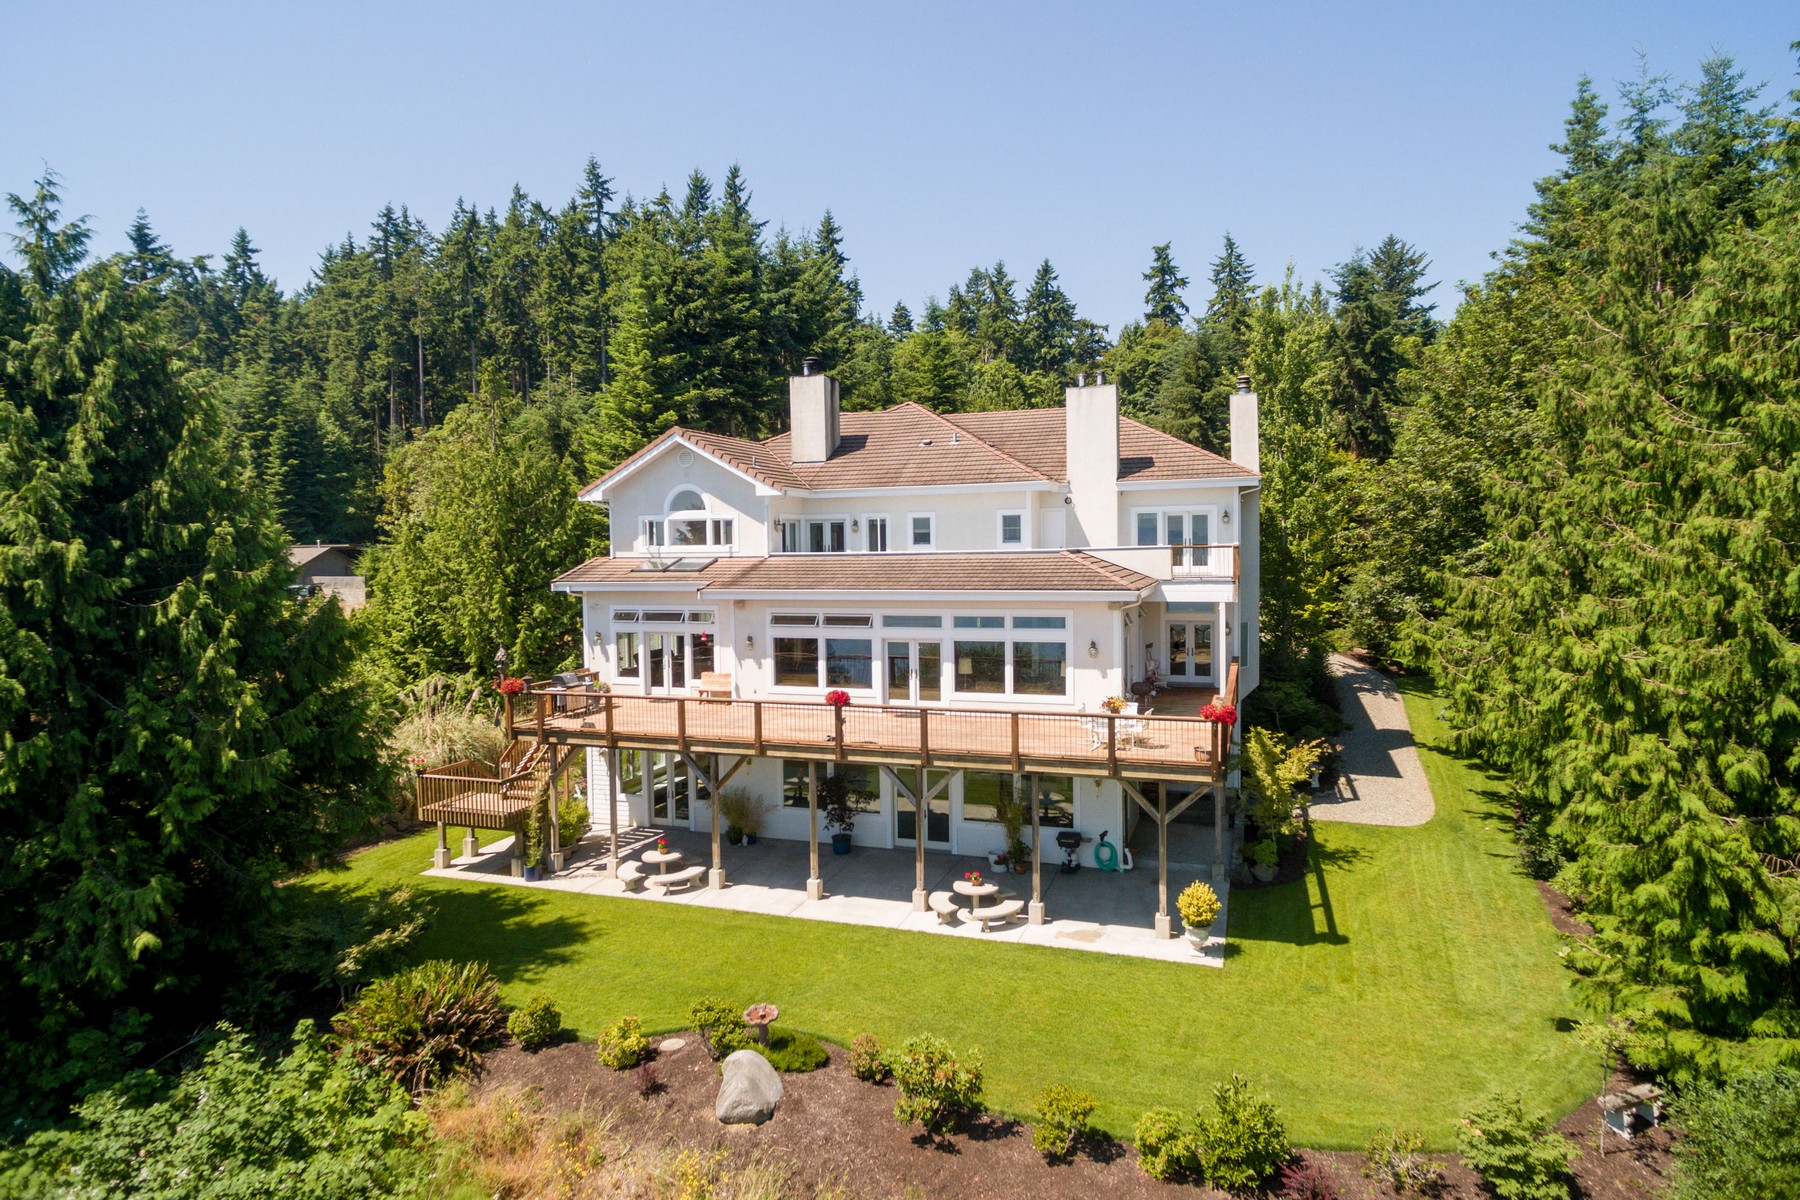 Single Family Home for Sale at Waterfront Estate RES712015 Port Hadlock, Washington 98339 United States